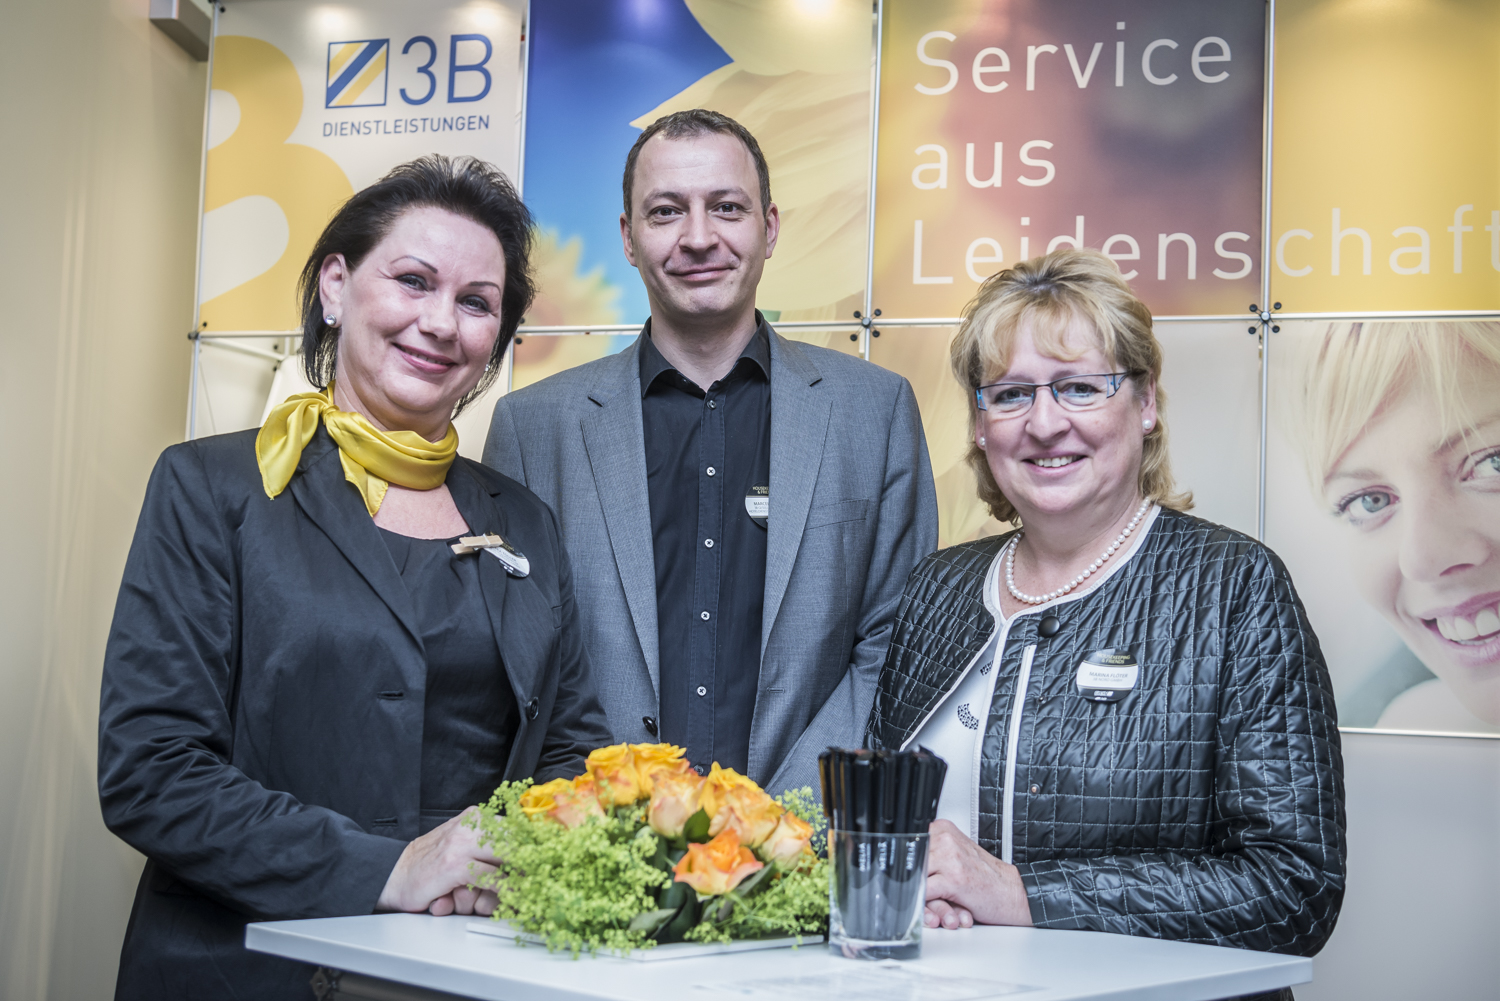 Housekeeping2016-byJensOellermann2480.jpg